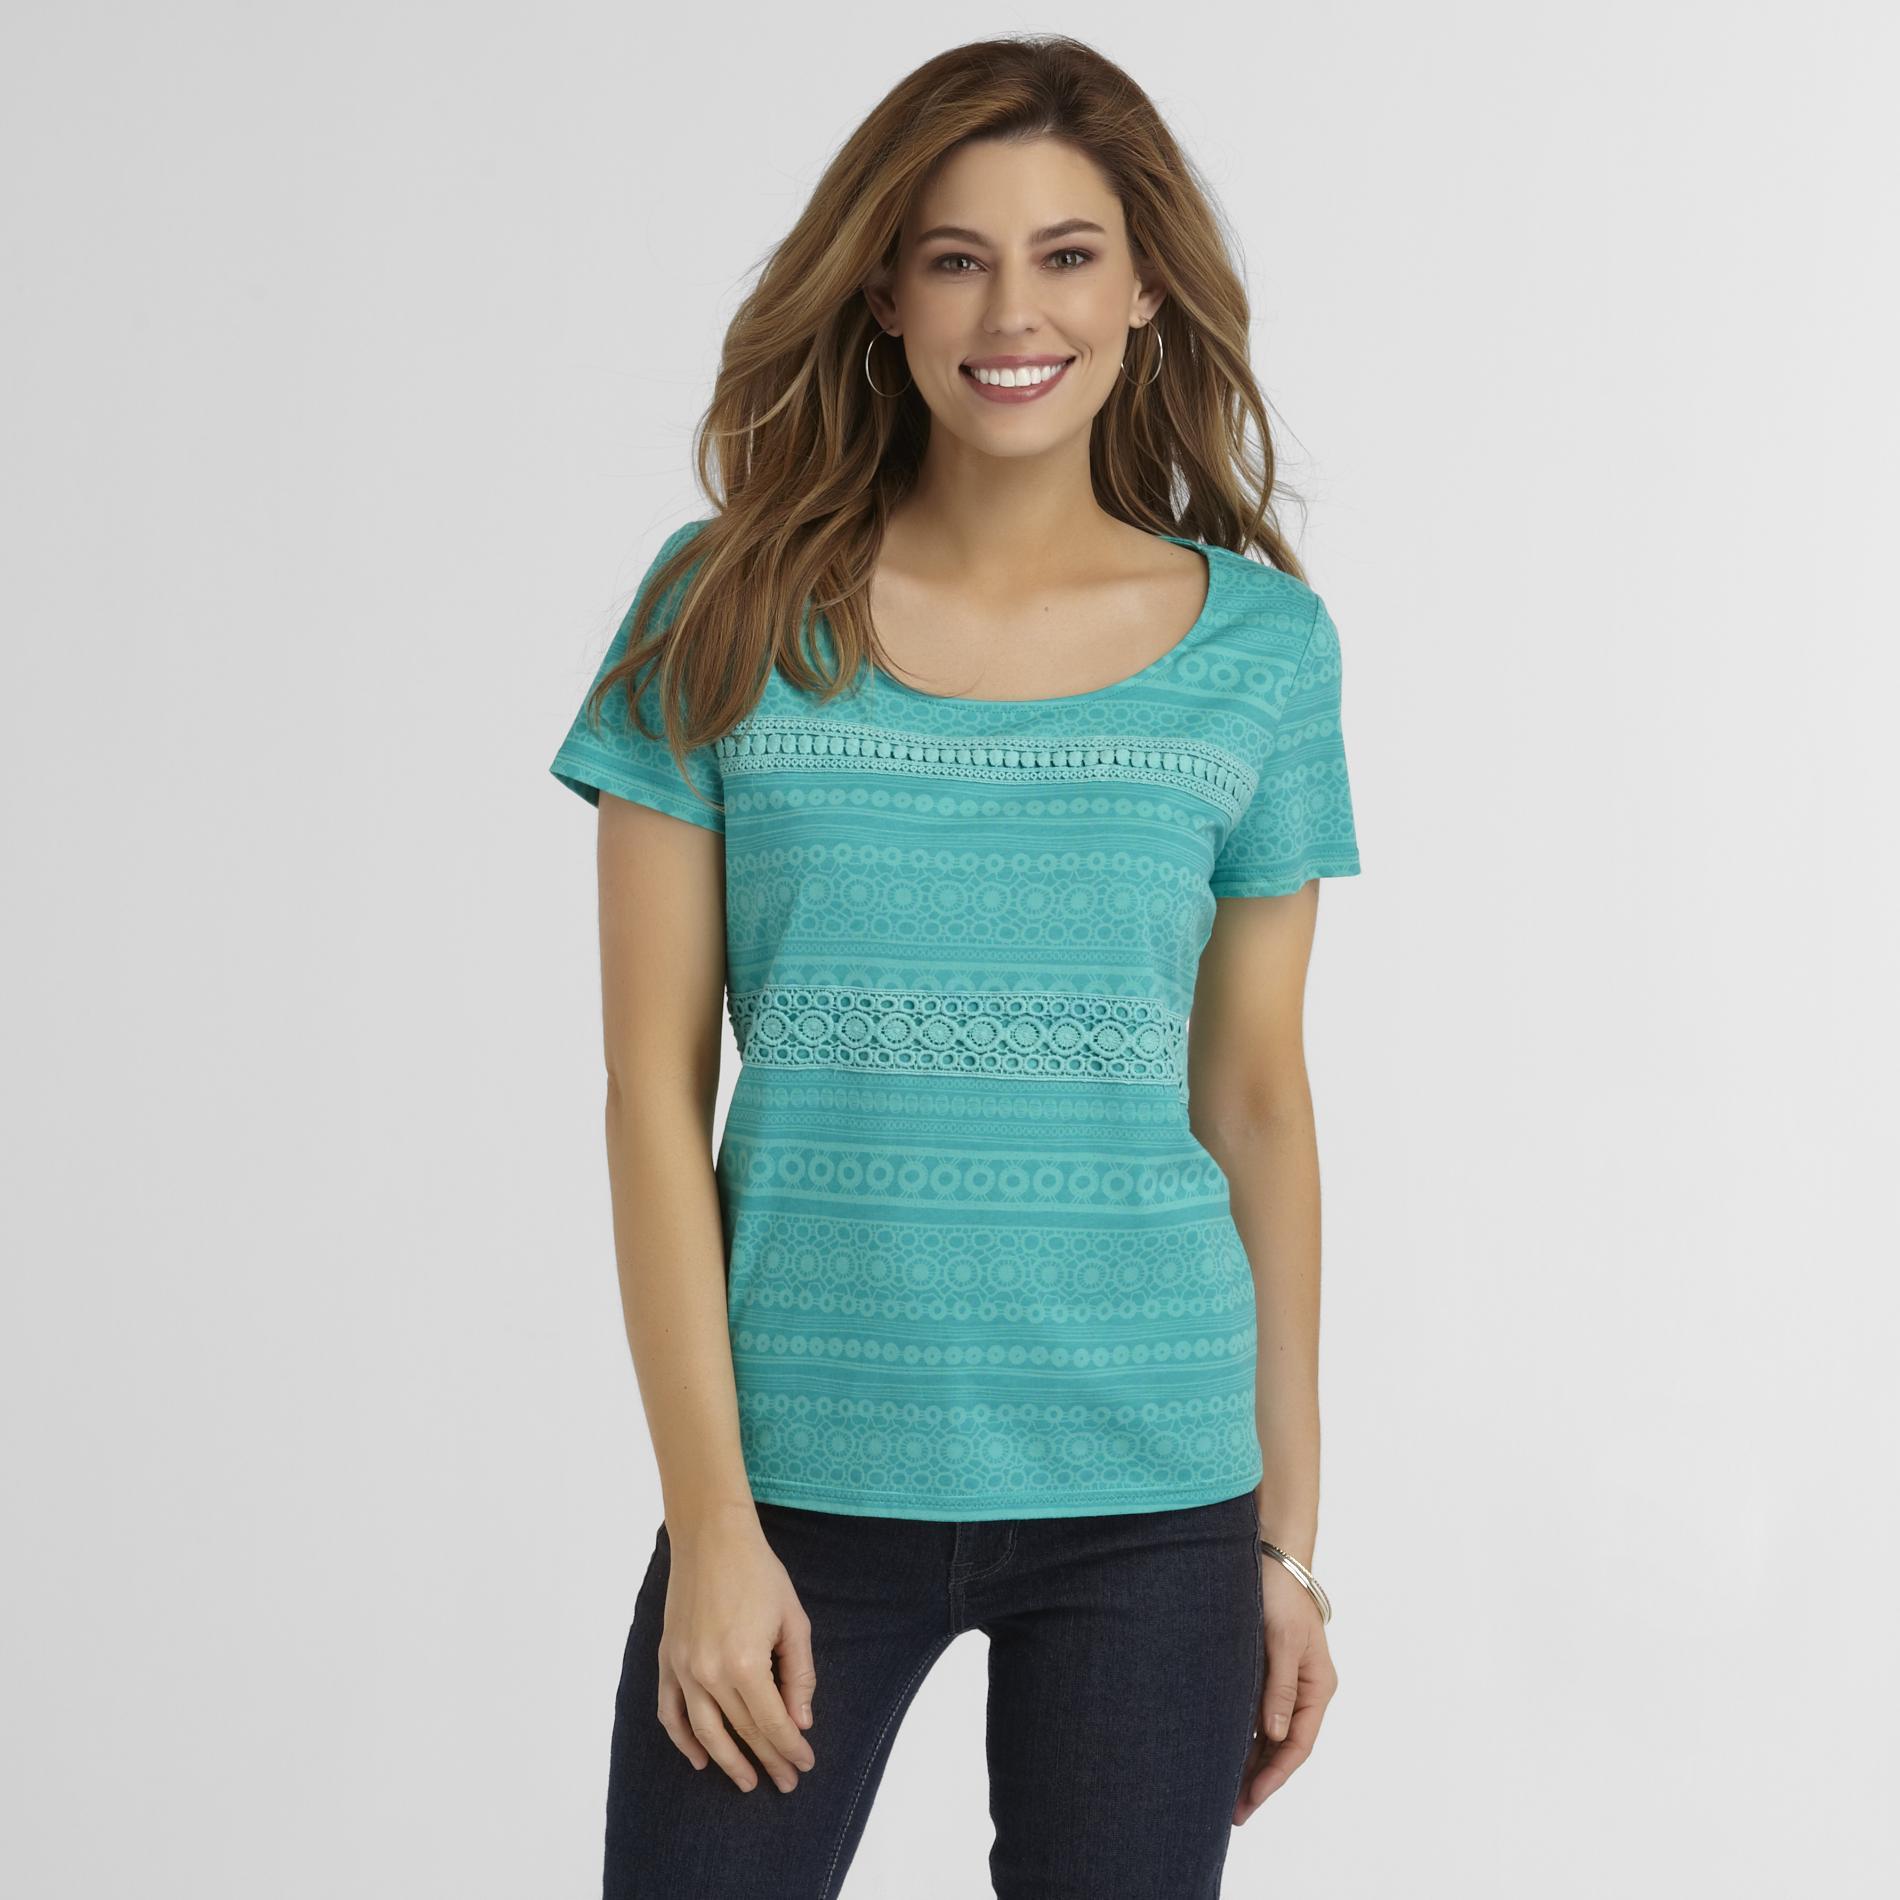 Basic Editions Women's T-Shirt - Eyelet at Kmart.com